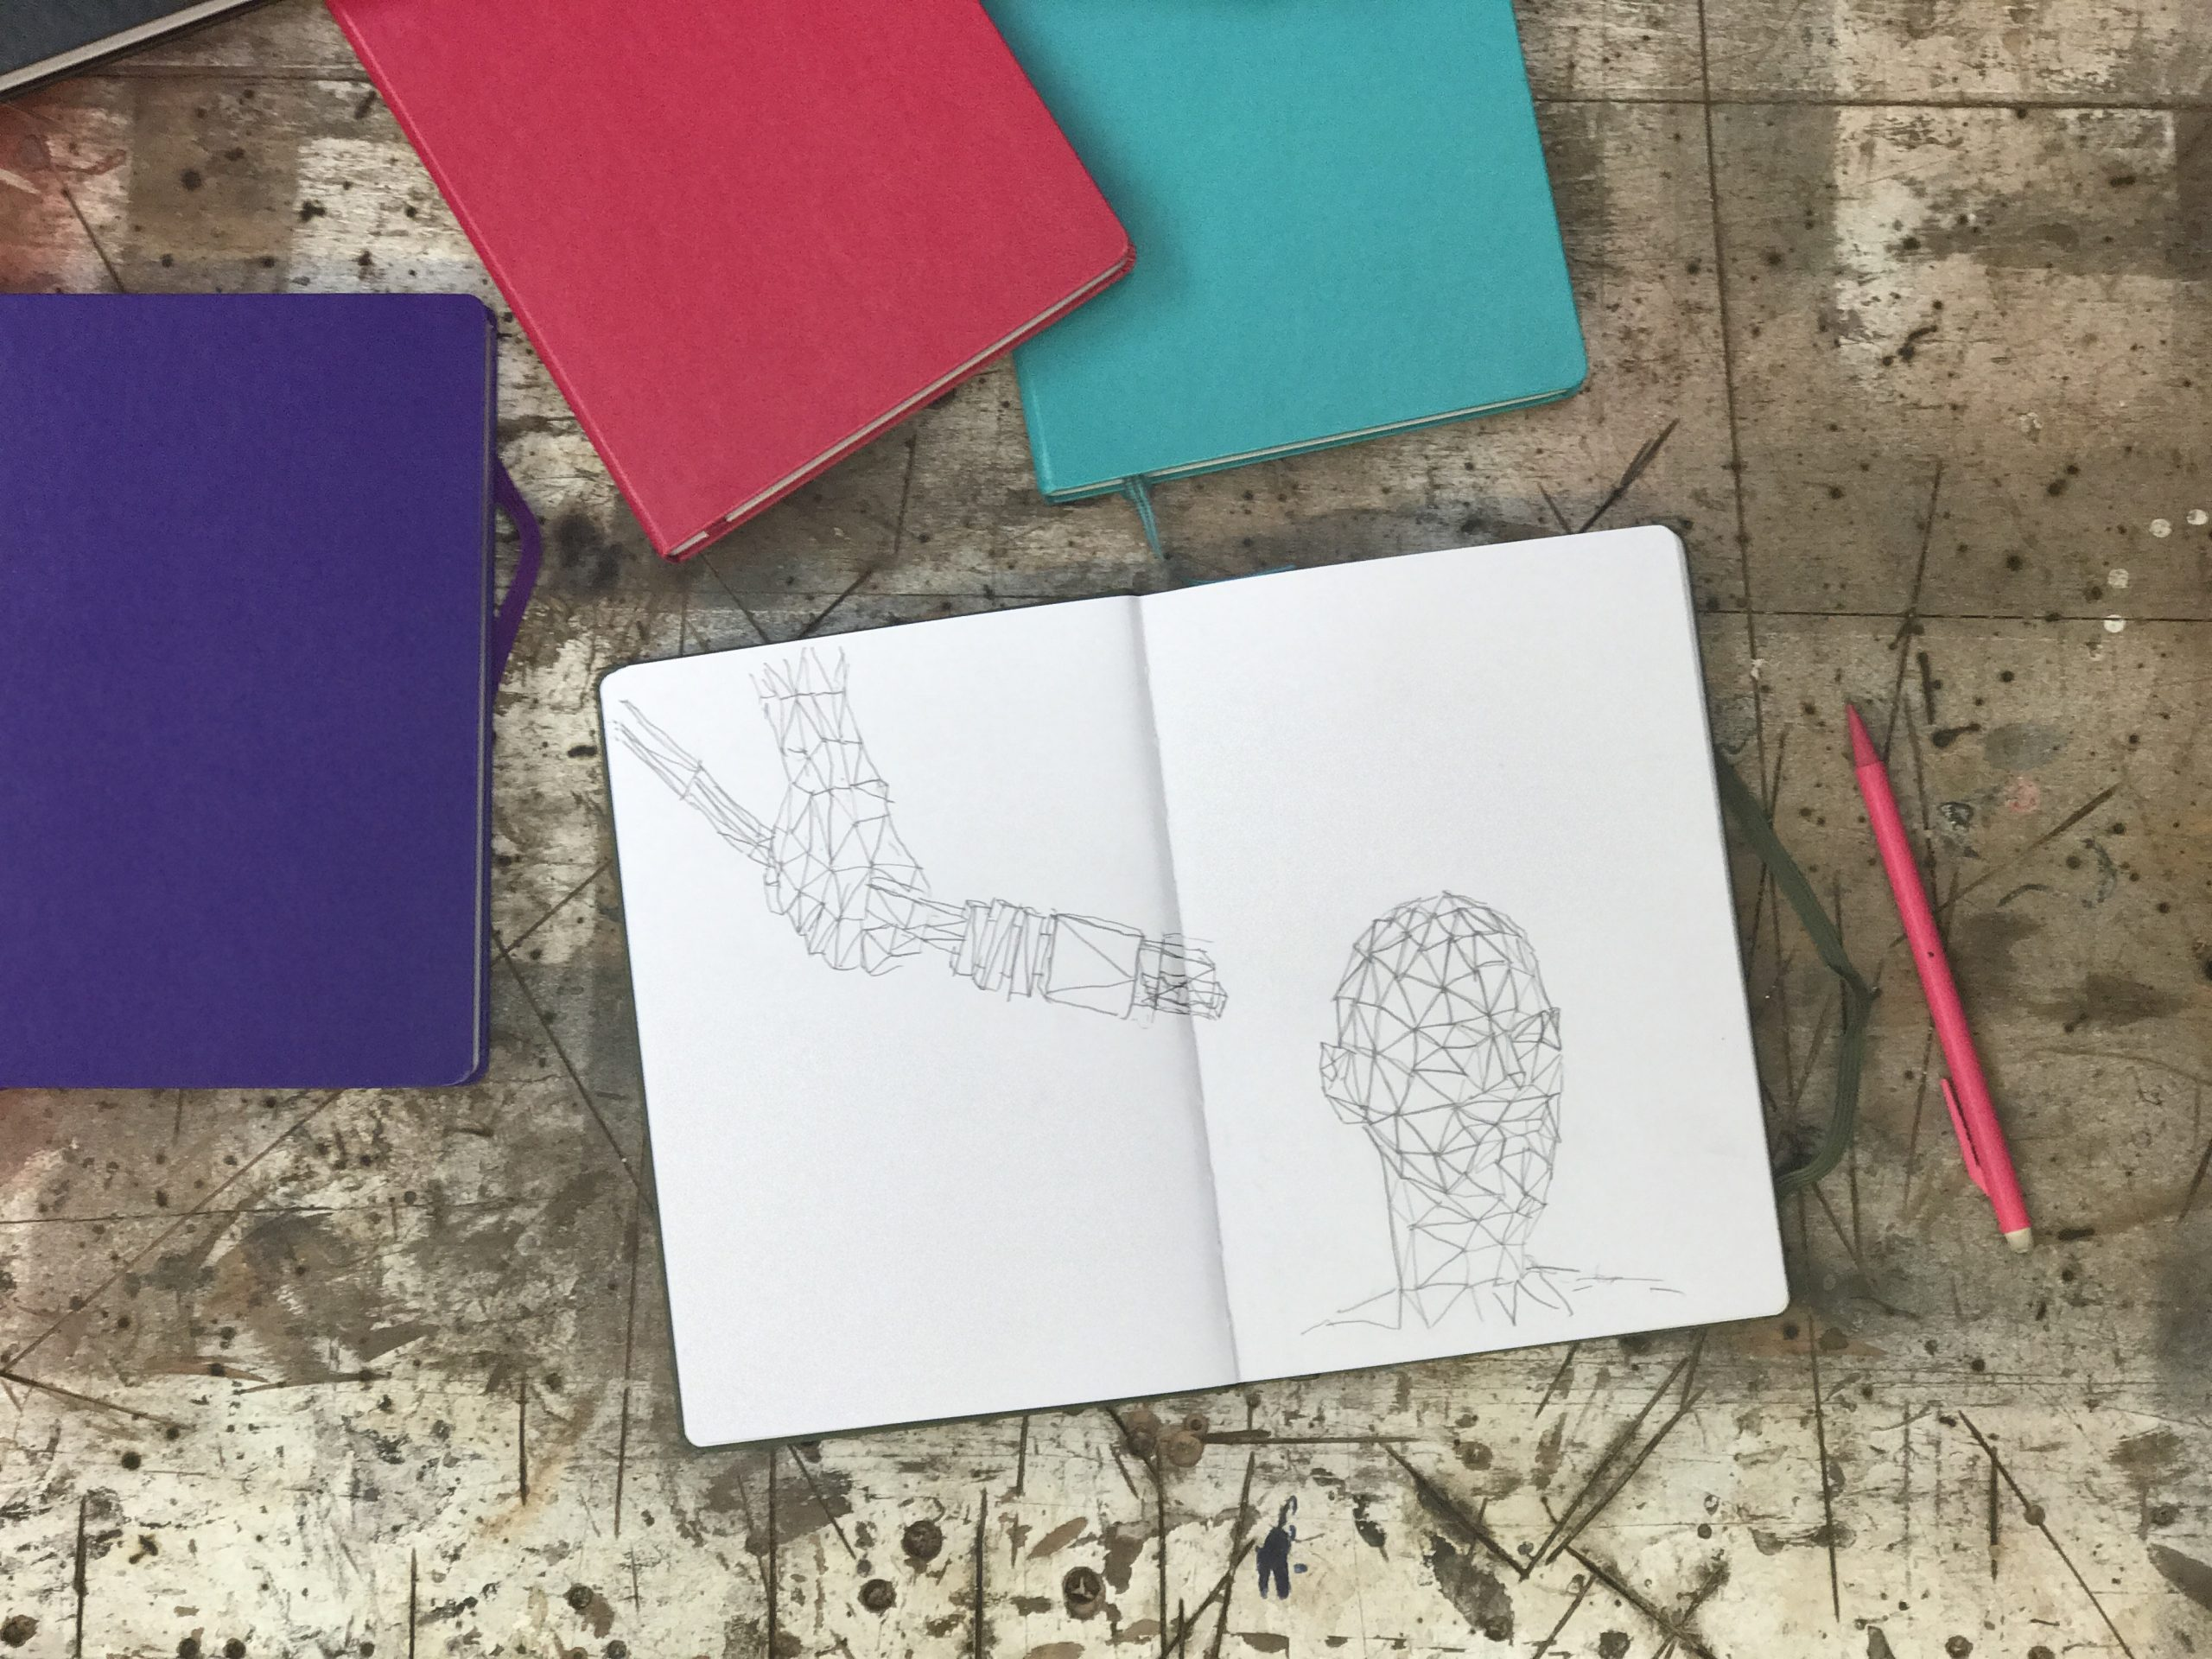 4 notes books on a table with a pencil nect to 1 open one. The other 3 are behind the open one and are purple, pink and blue. On the open paged notebook there is a artistic sketch design of a head with a plug being attached to the back of the head.